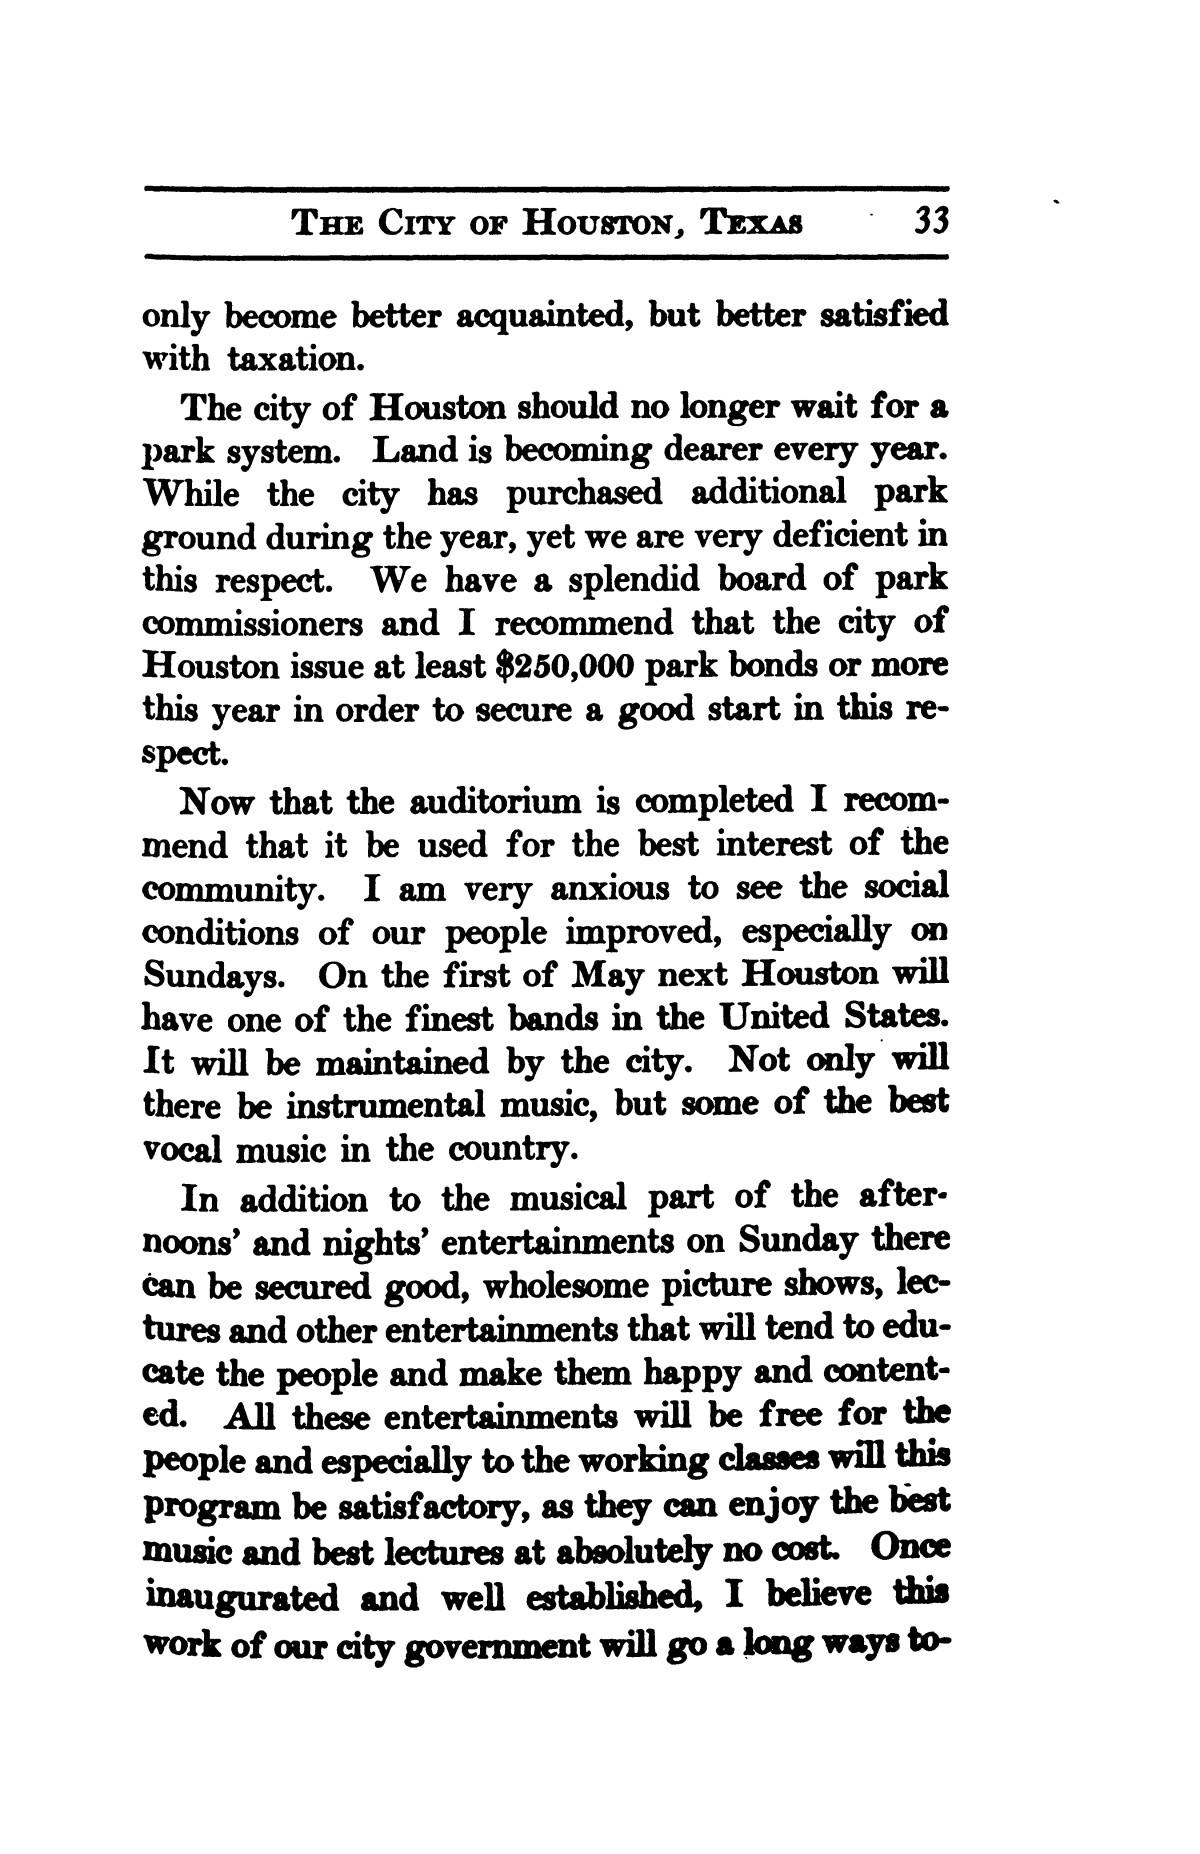 A thumb-nail history of the city of Houston, Texas, from its founding in 1836 to the year 1912                                                                                                      33